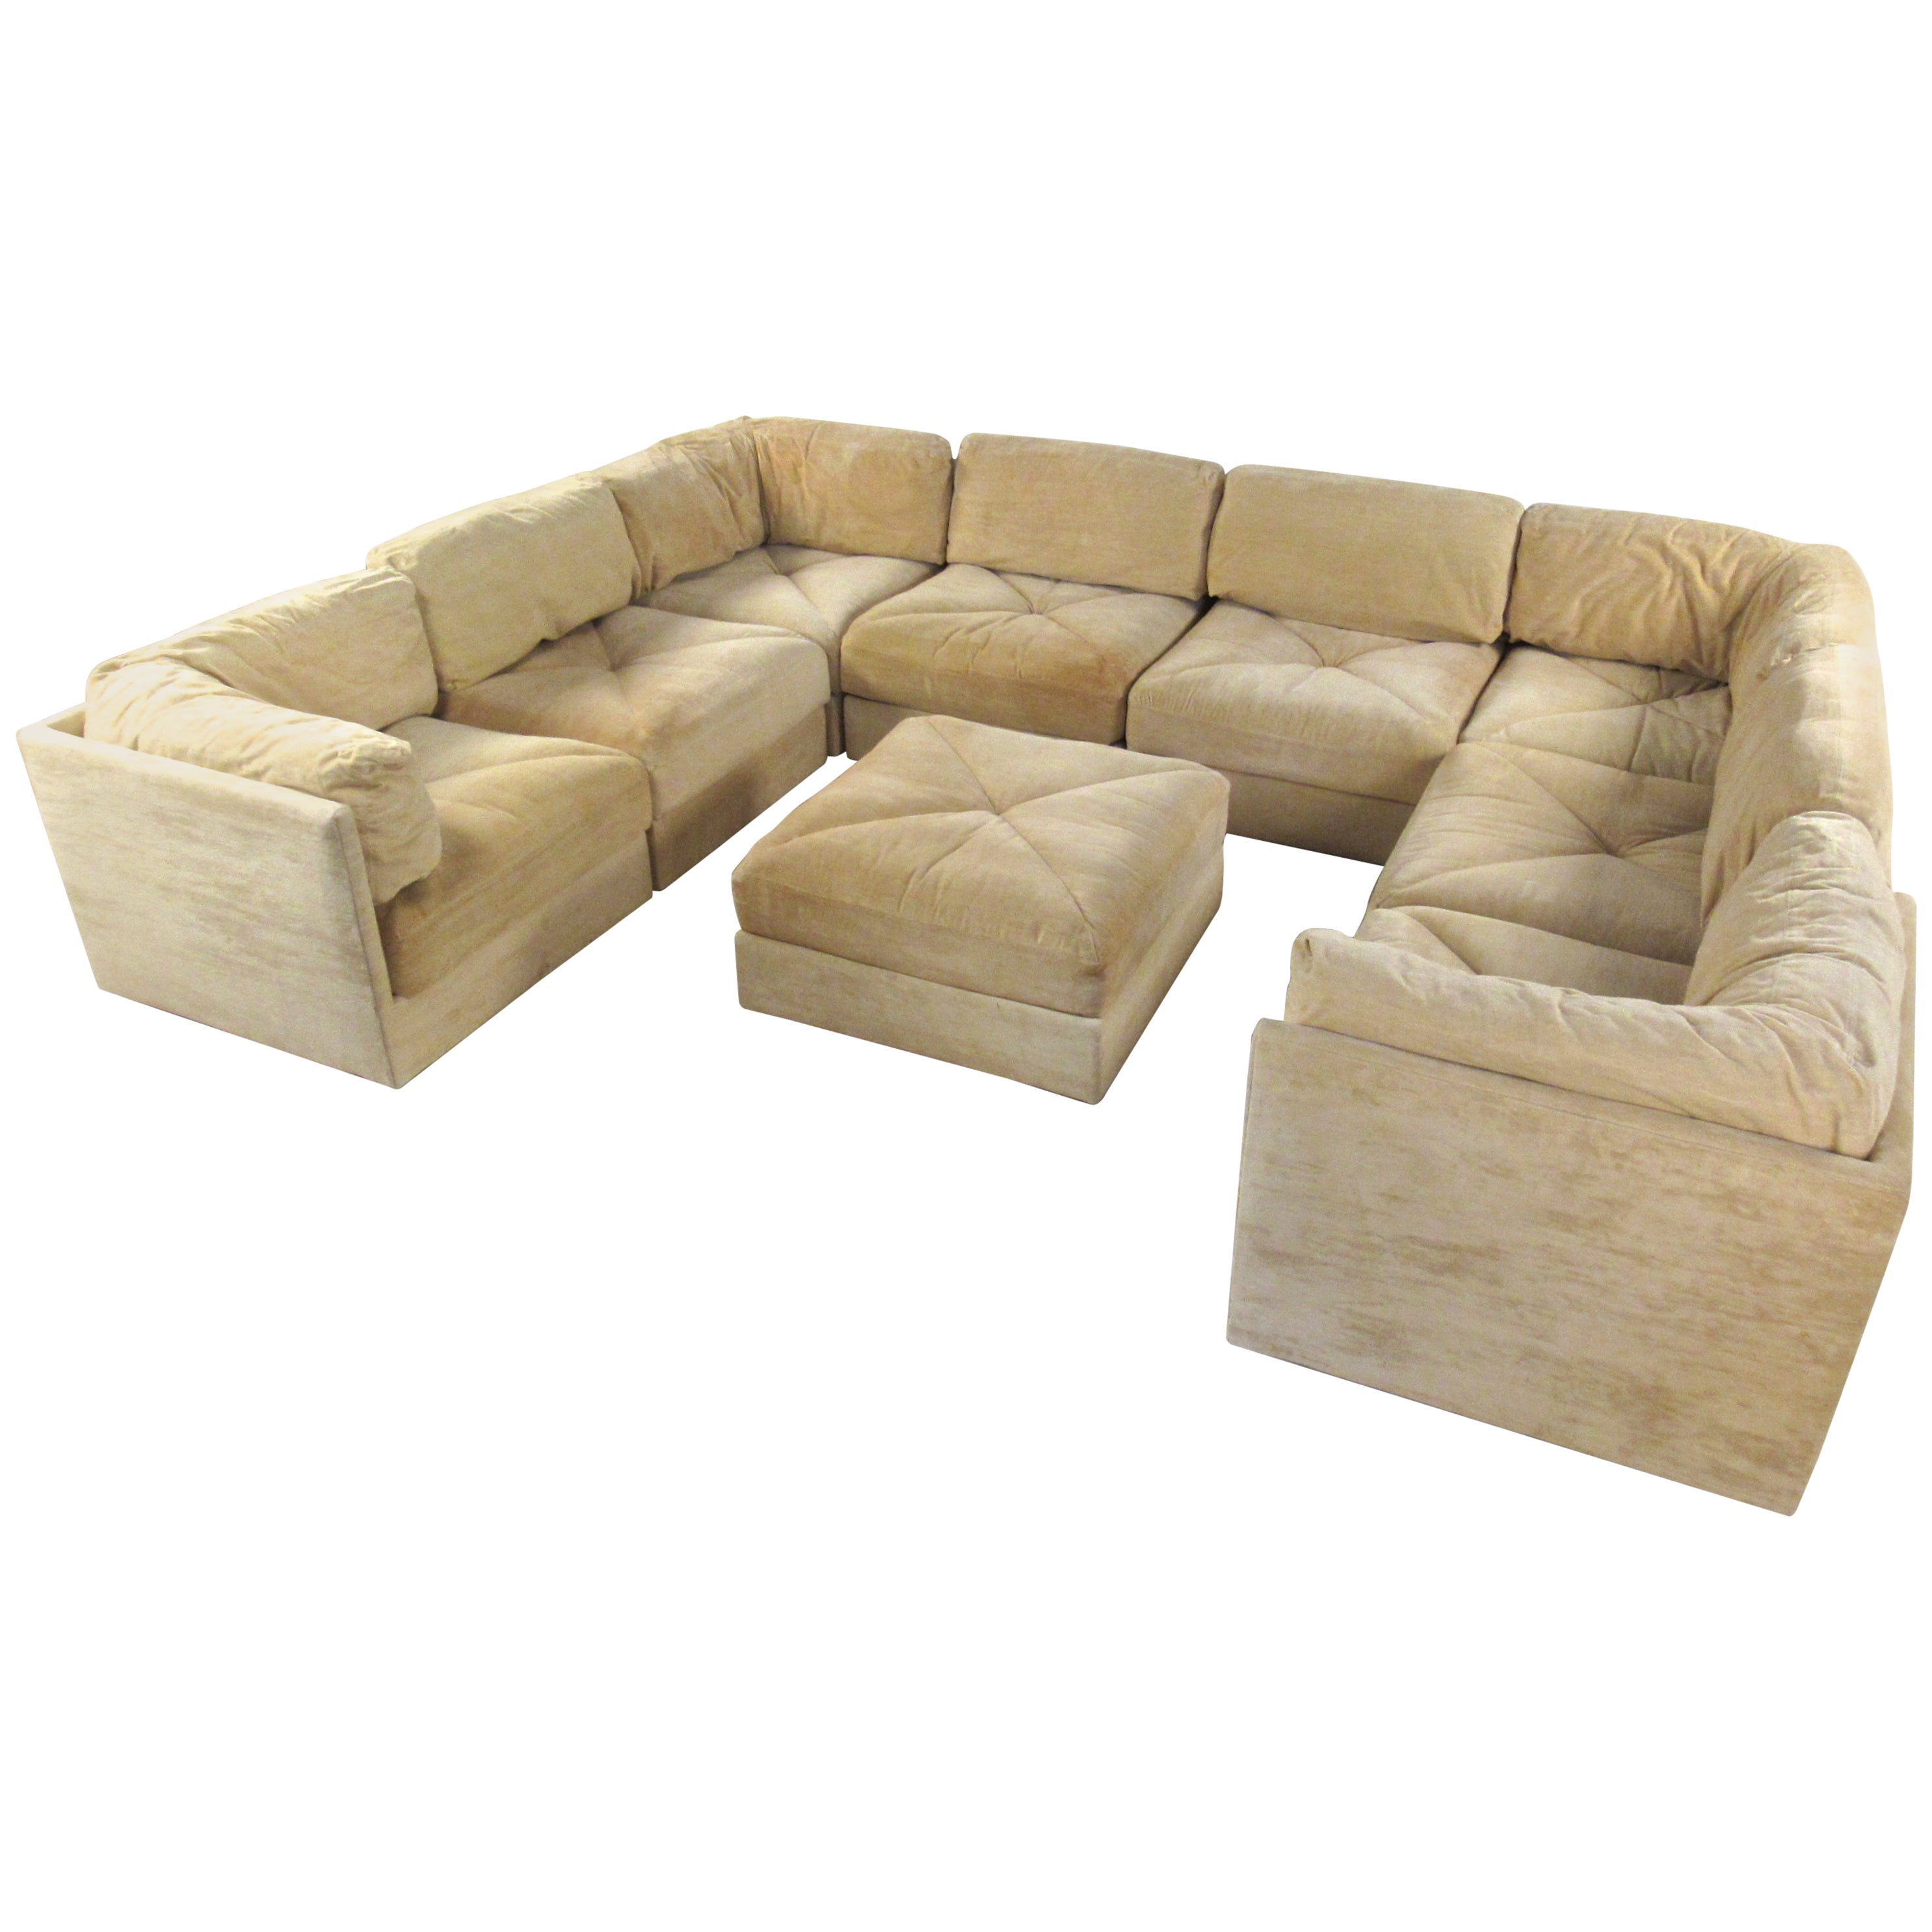 Mid-Century Modern Sectional Sofa by Selig at 1stdibs